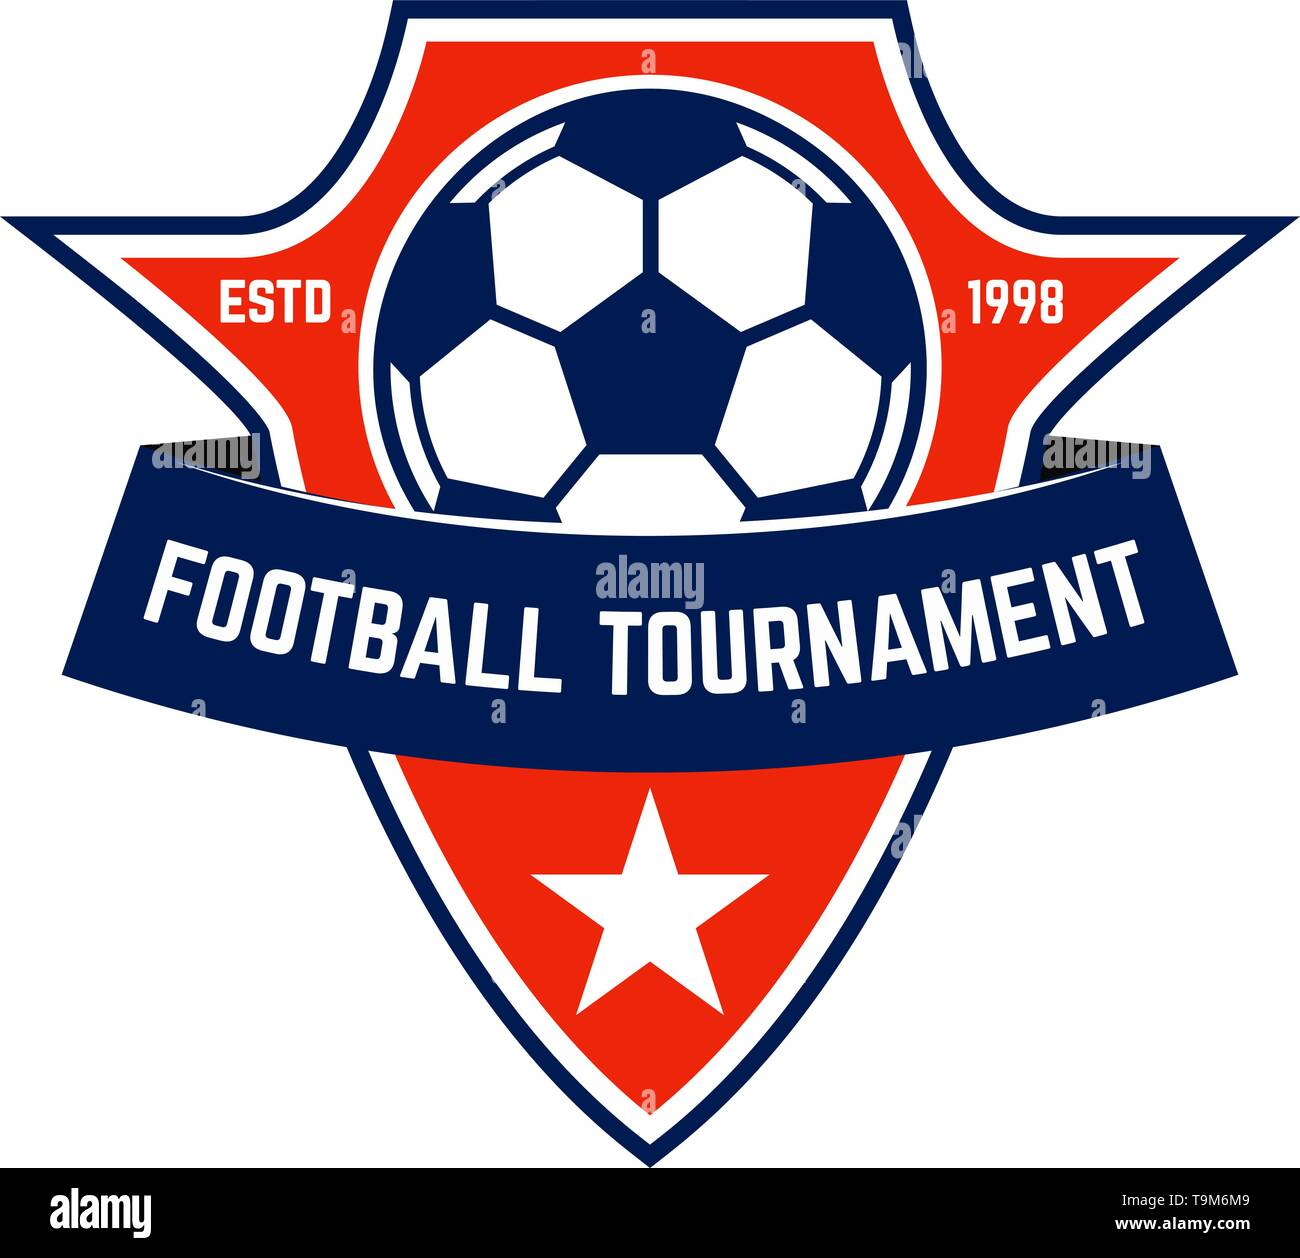 Soccer club emblem. Design element for logo, label, sign, poster. Vector illustration - Stock Image